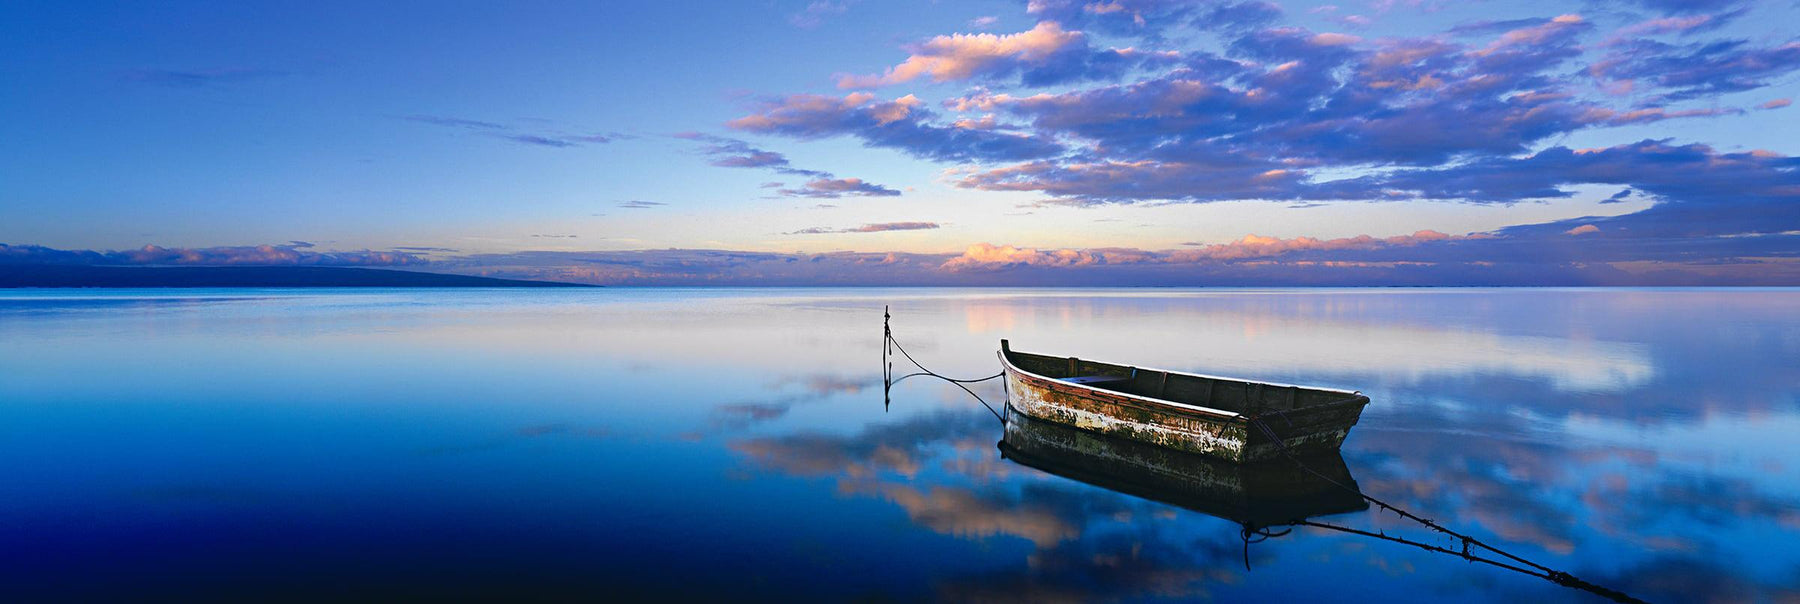 Old rowboat tied up on the perfectly still waters of the shoreline of Molokai Hawaii under a cloud filled sky